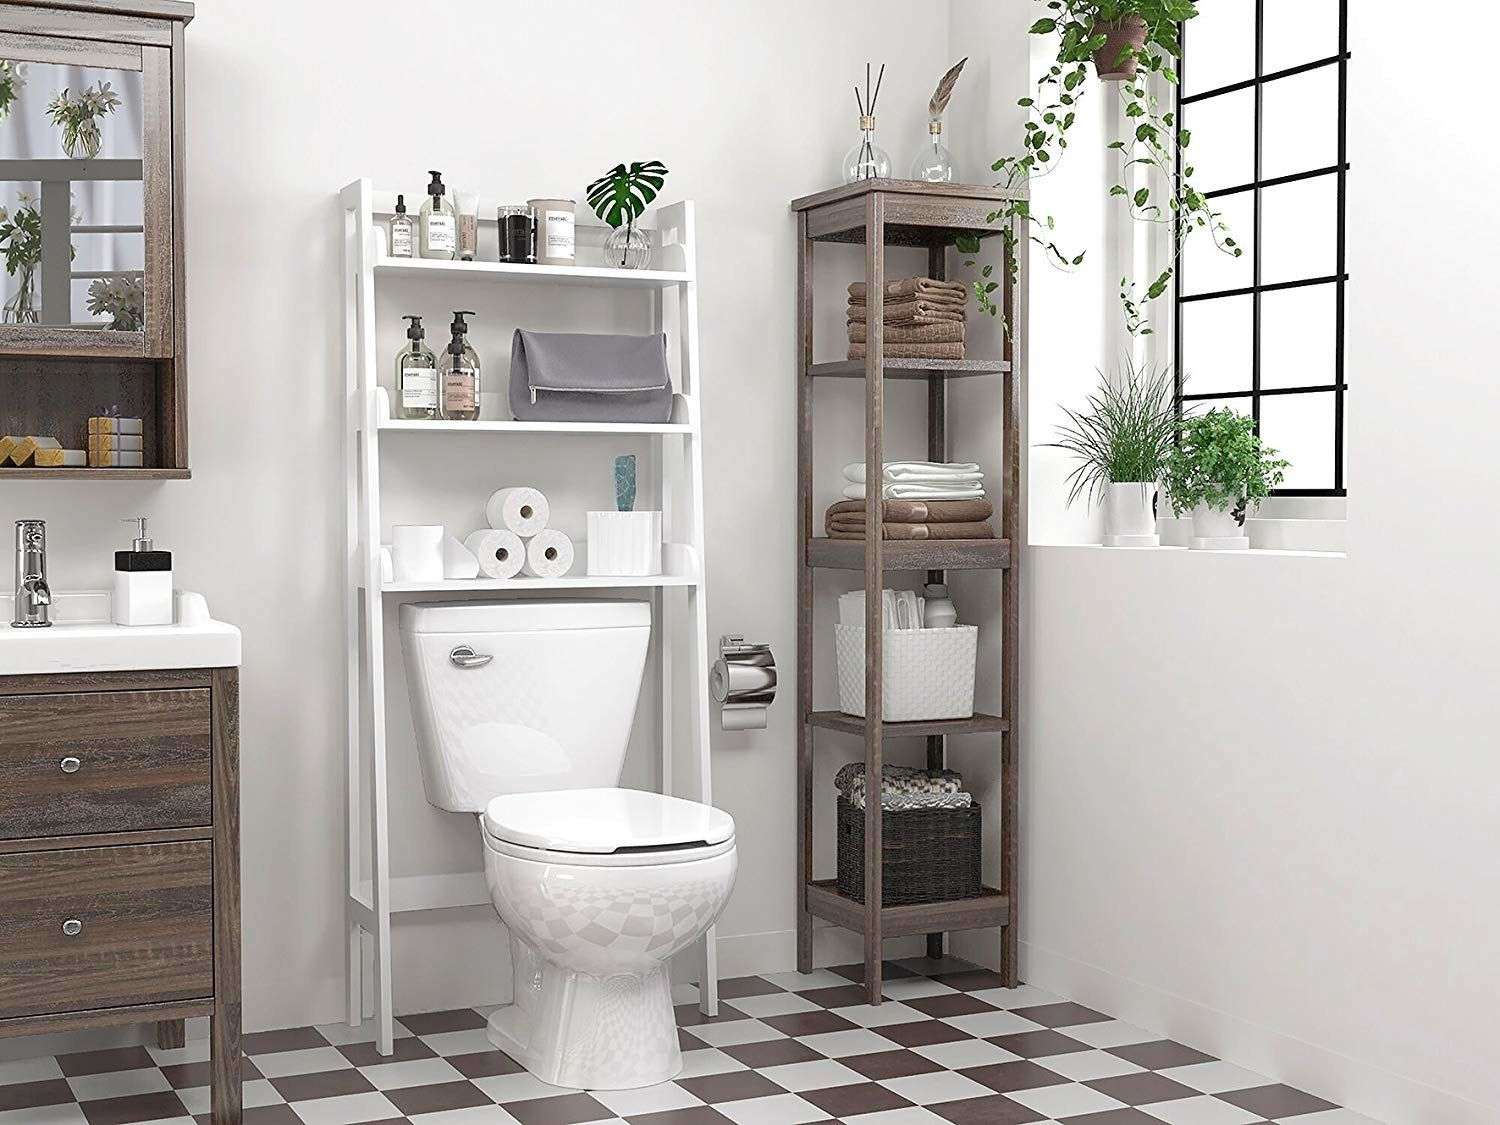 20 Pieces Of Furniture And Decor That Are Perfect For Small Apartments Bathroom Organisation Bathroom Solutions Space Saving Bathroom